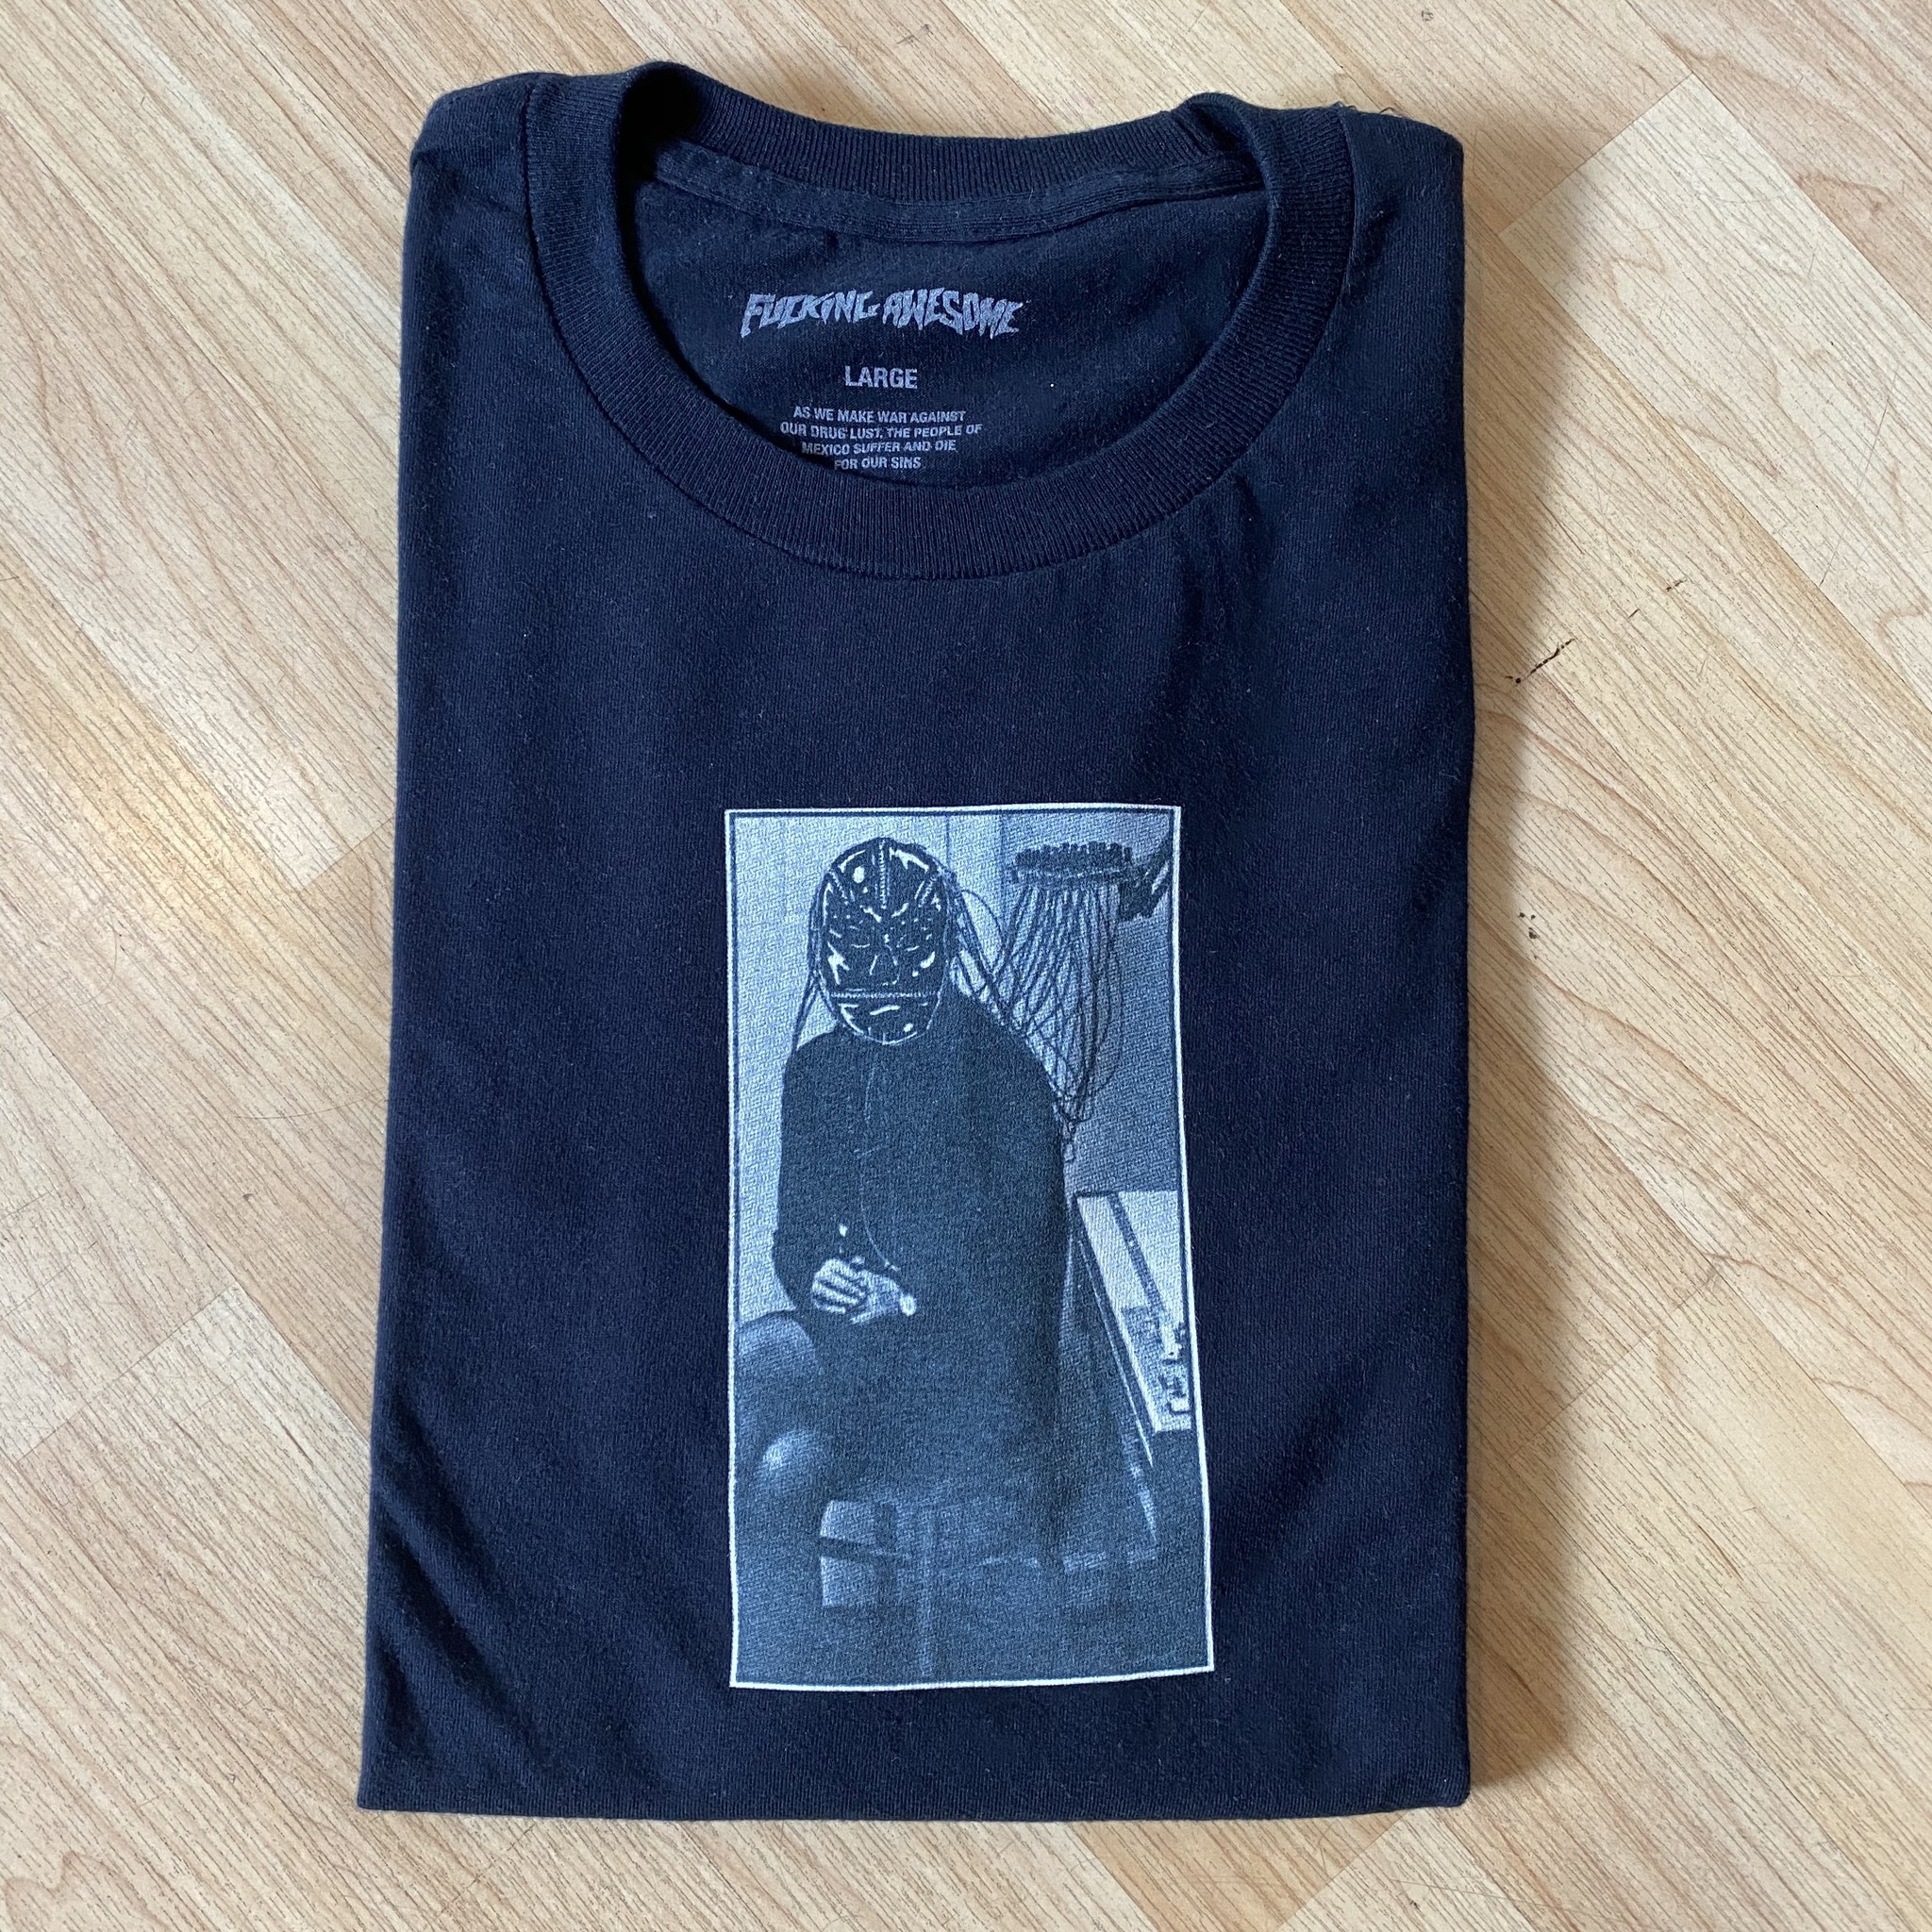 Fucking Awesome Personality Tee Black Size L